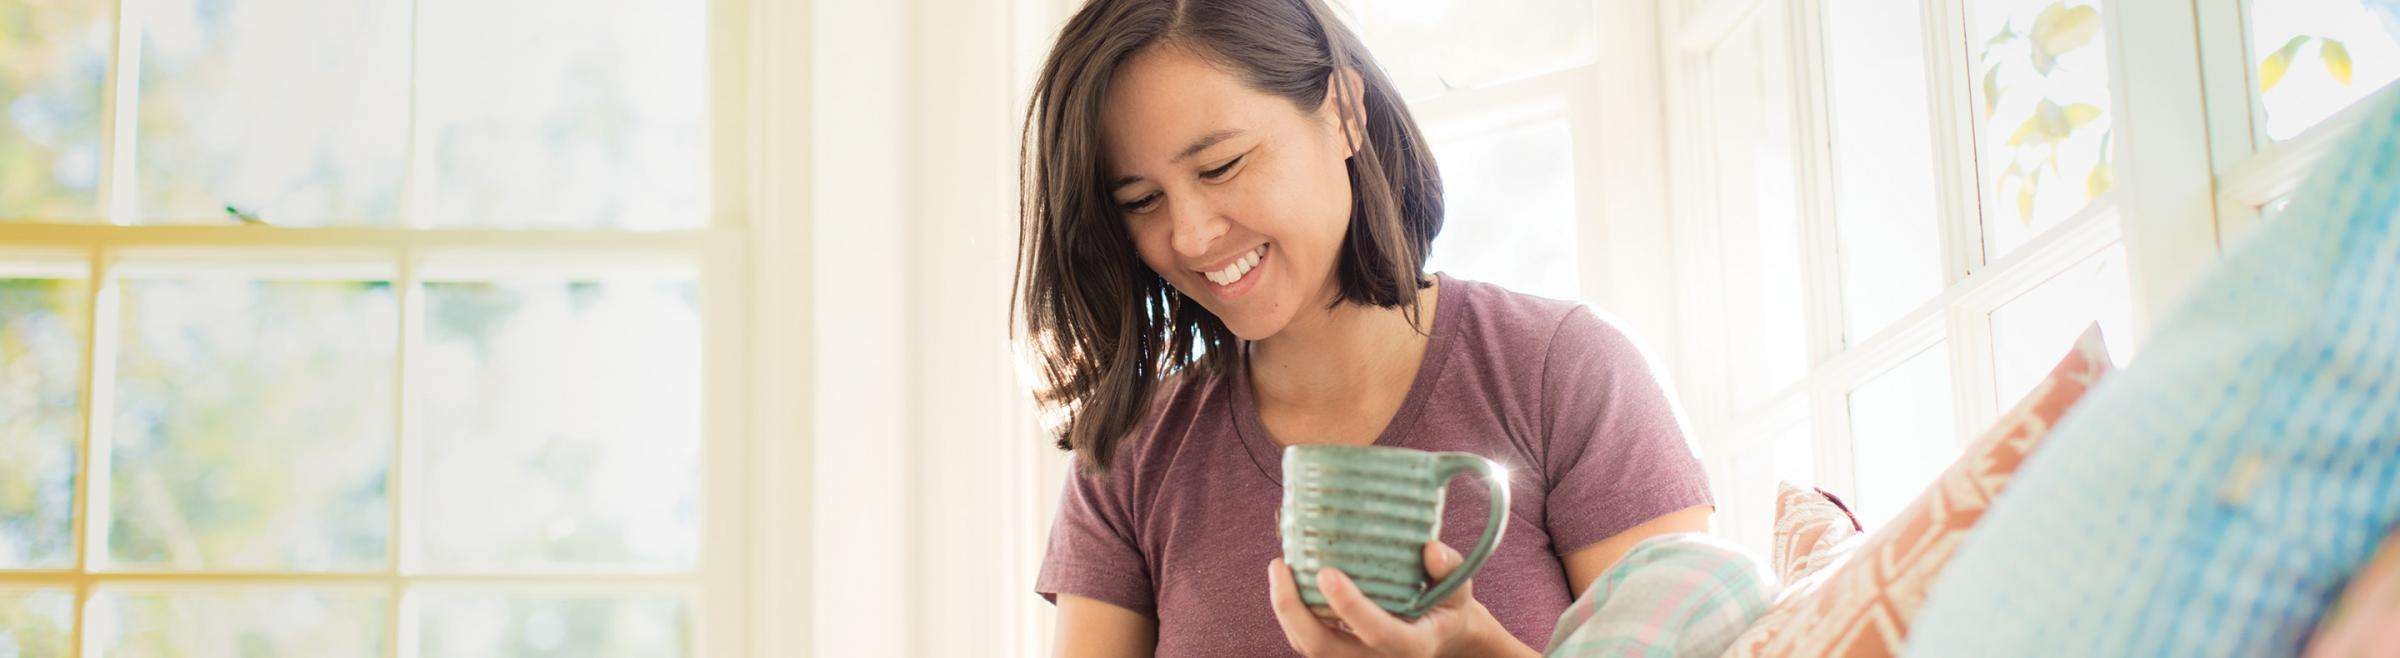 Woman drinking coffee and smiling in bright living room